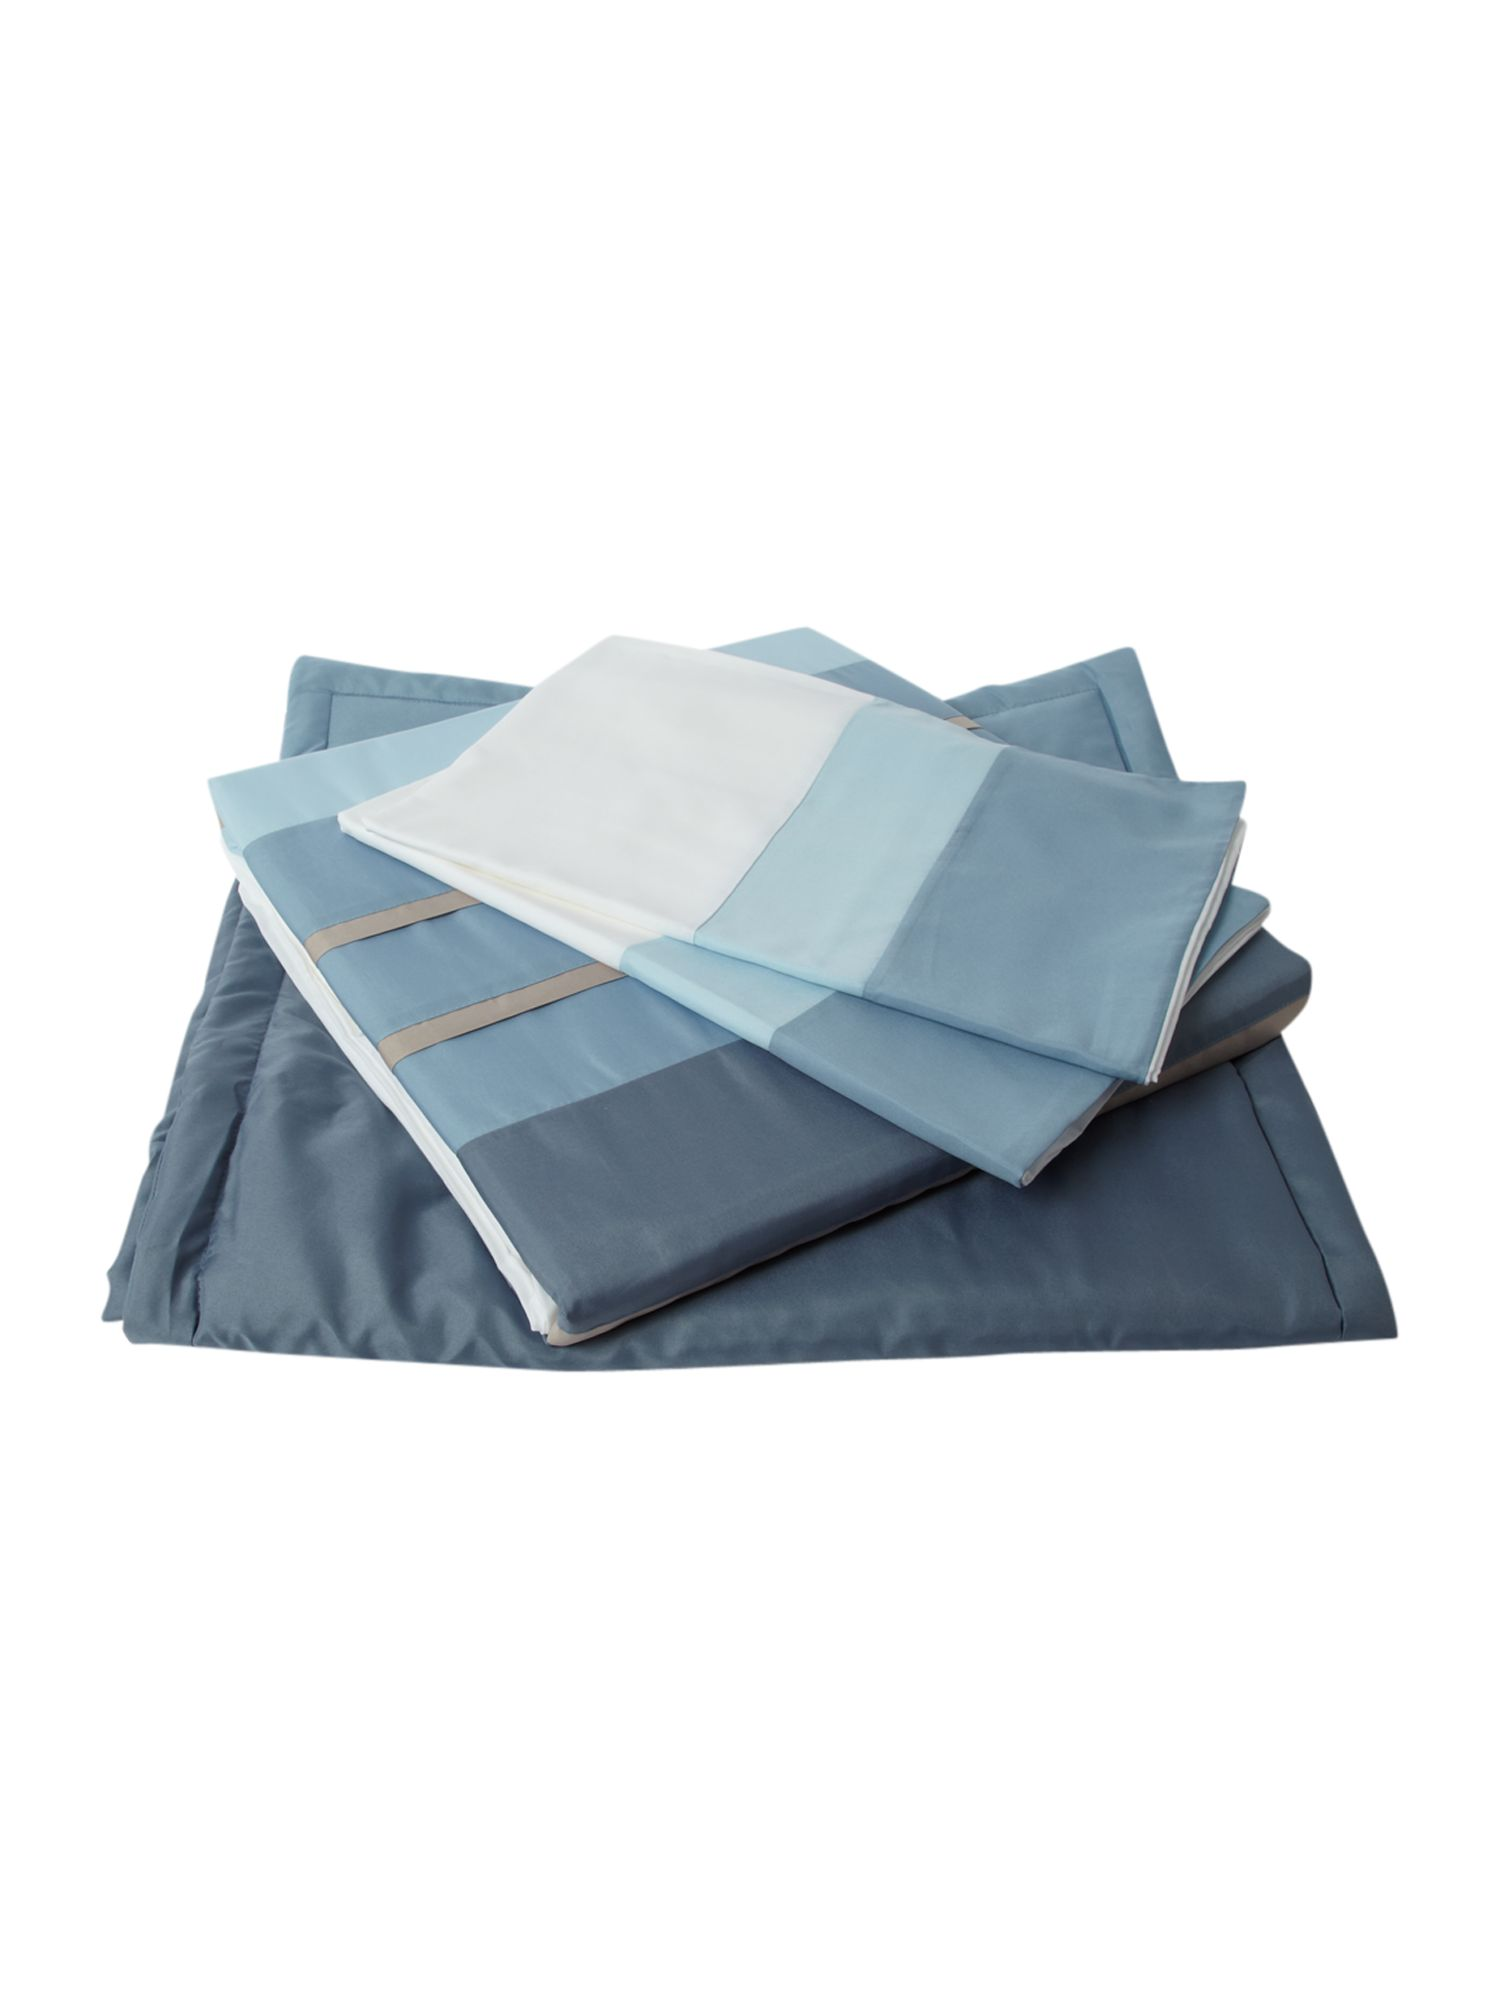 Tri band bed in a bag double duvet cover blue